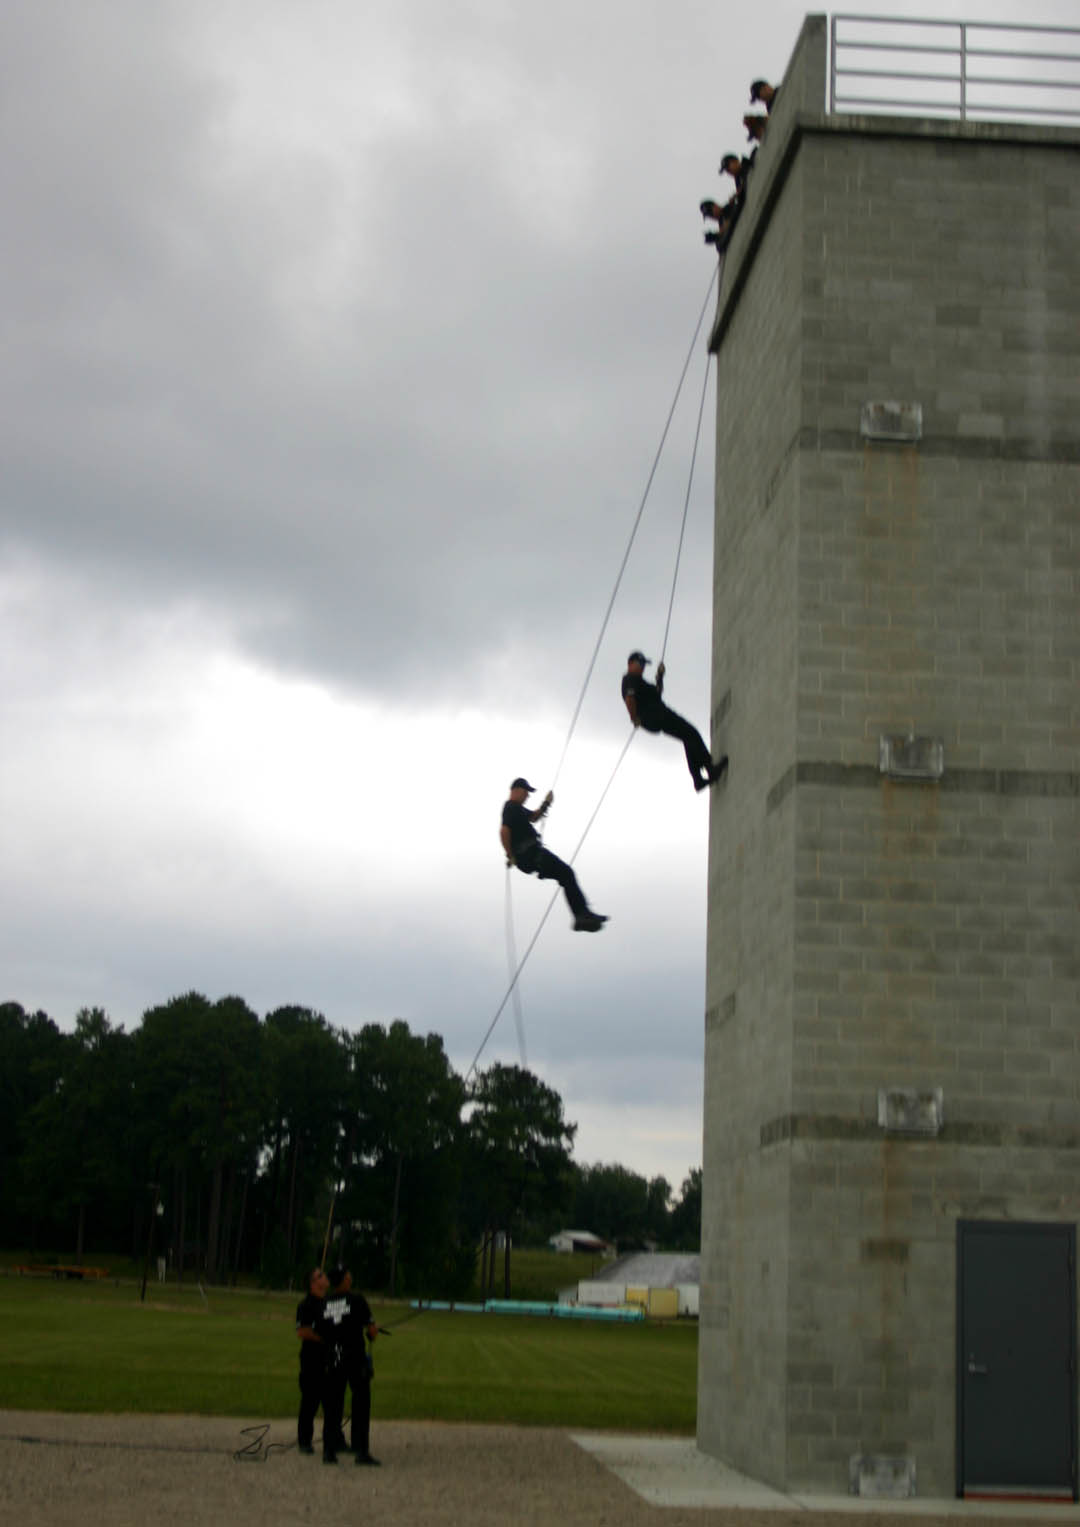 Click to enlarge,  Officers Brad Kidd and Doug Womack, of the Sanford Police Department rappel down the rescue tower at Central Carolina Community College's Emergency Services Training Center in Sanford during the Center's Open House Sept. 10. The 116-acre Center showed off its high-quality training facilities with the help of demonstrators from local police and fire departments. The belayers on the ground, holding the ropes, are Captain Wade Genthe and Officer Lee Allen.